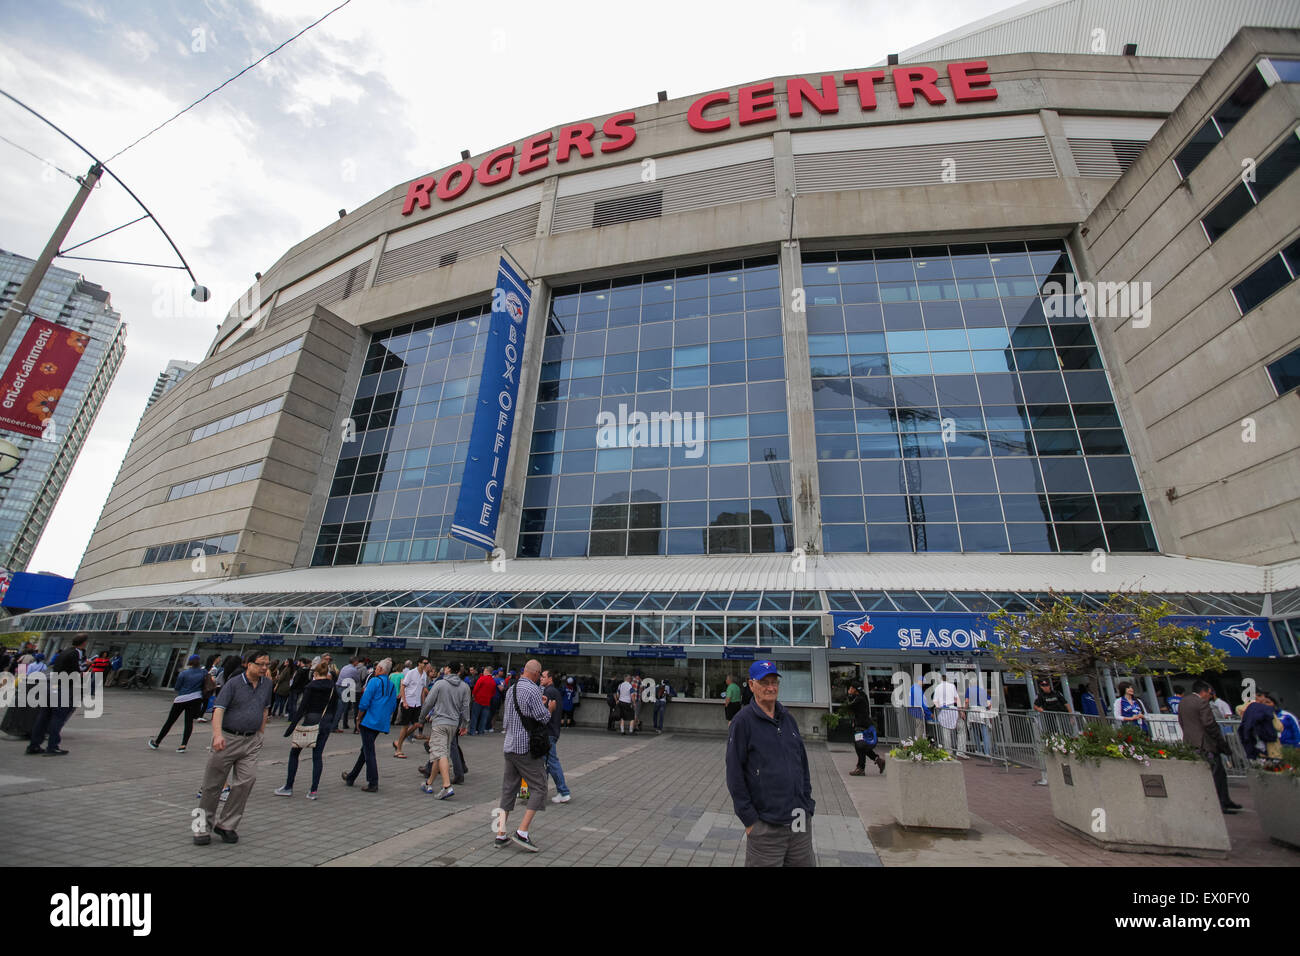 Rogers Centre Toronto Canada formerly known as Skydome - Stock Image